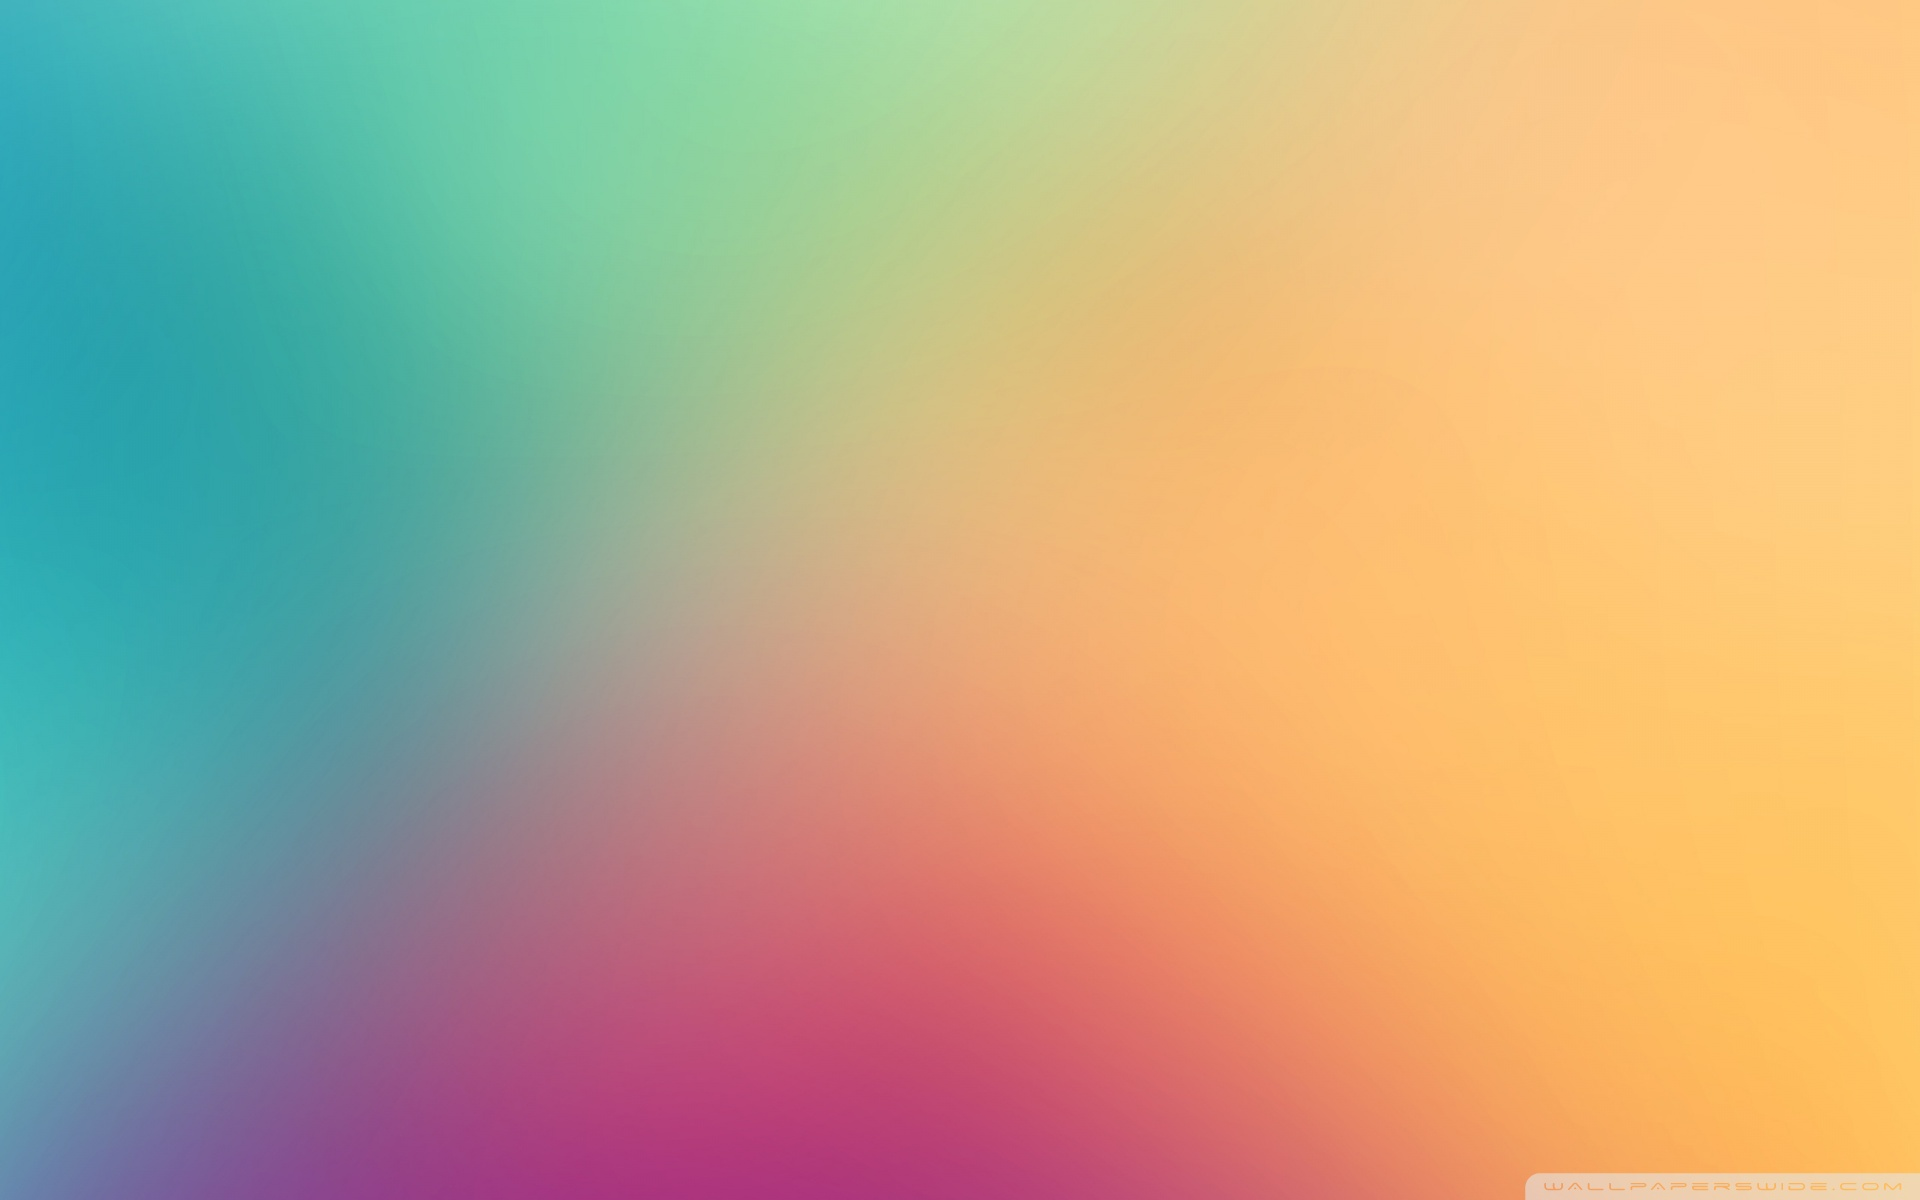 Gradient-HD-Desktop-Wallpaper.jpg